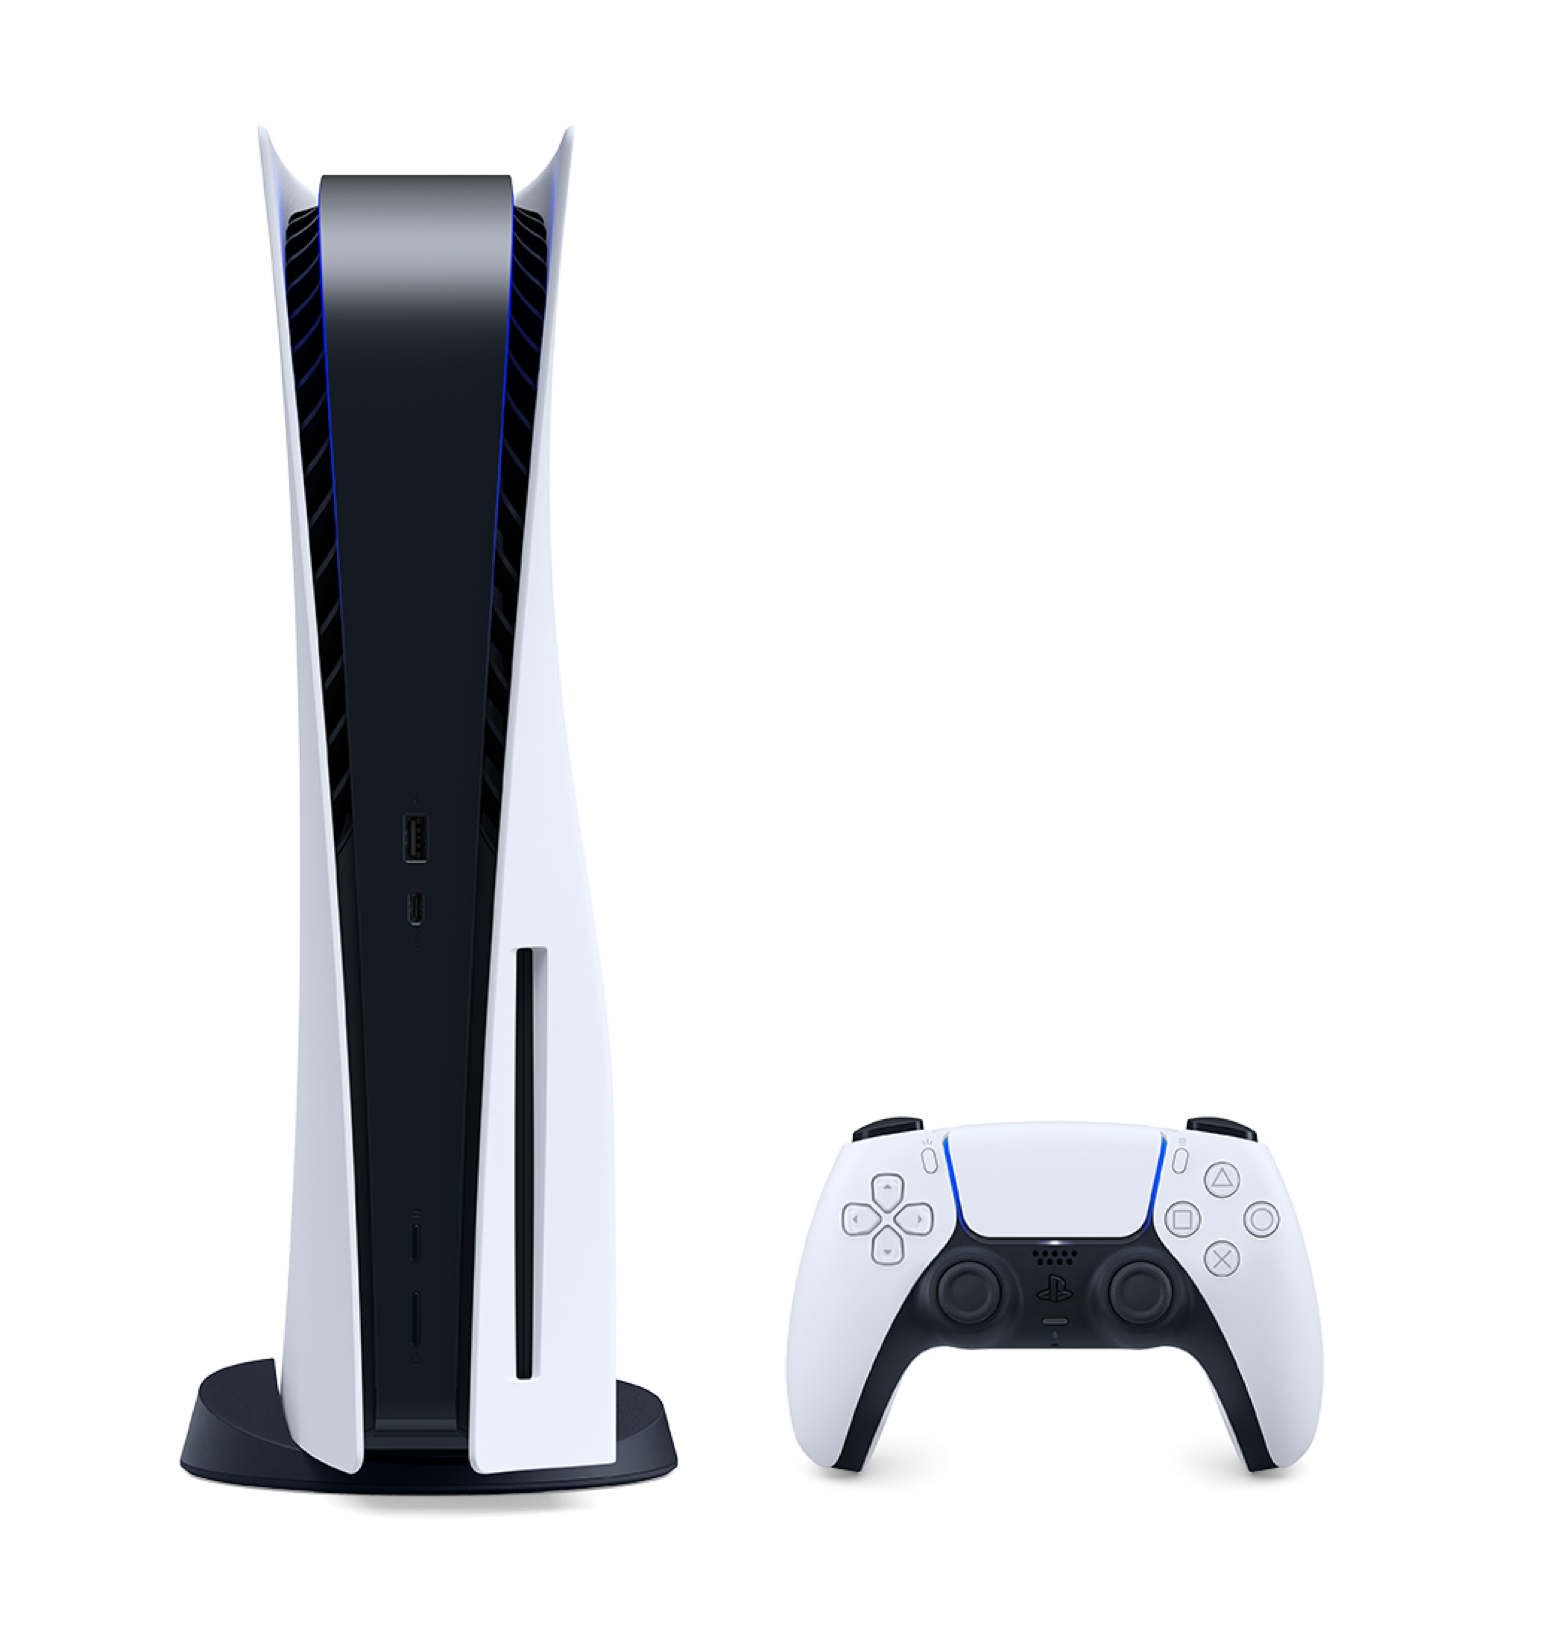 Playstation 5 with dualsense controller